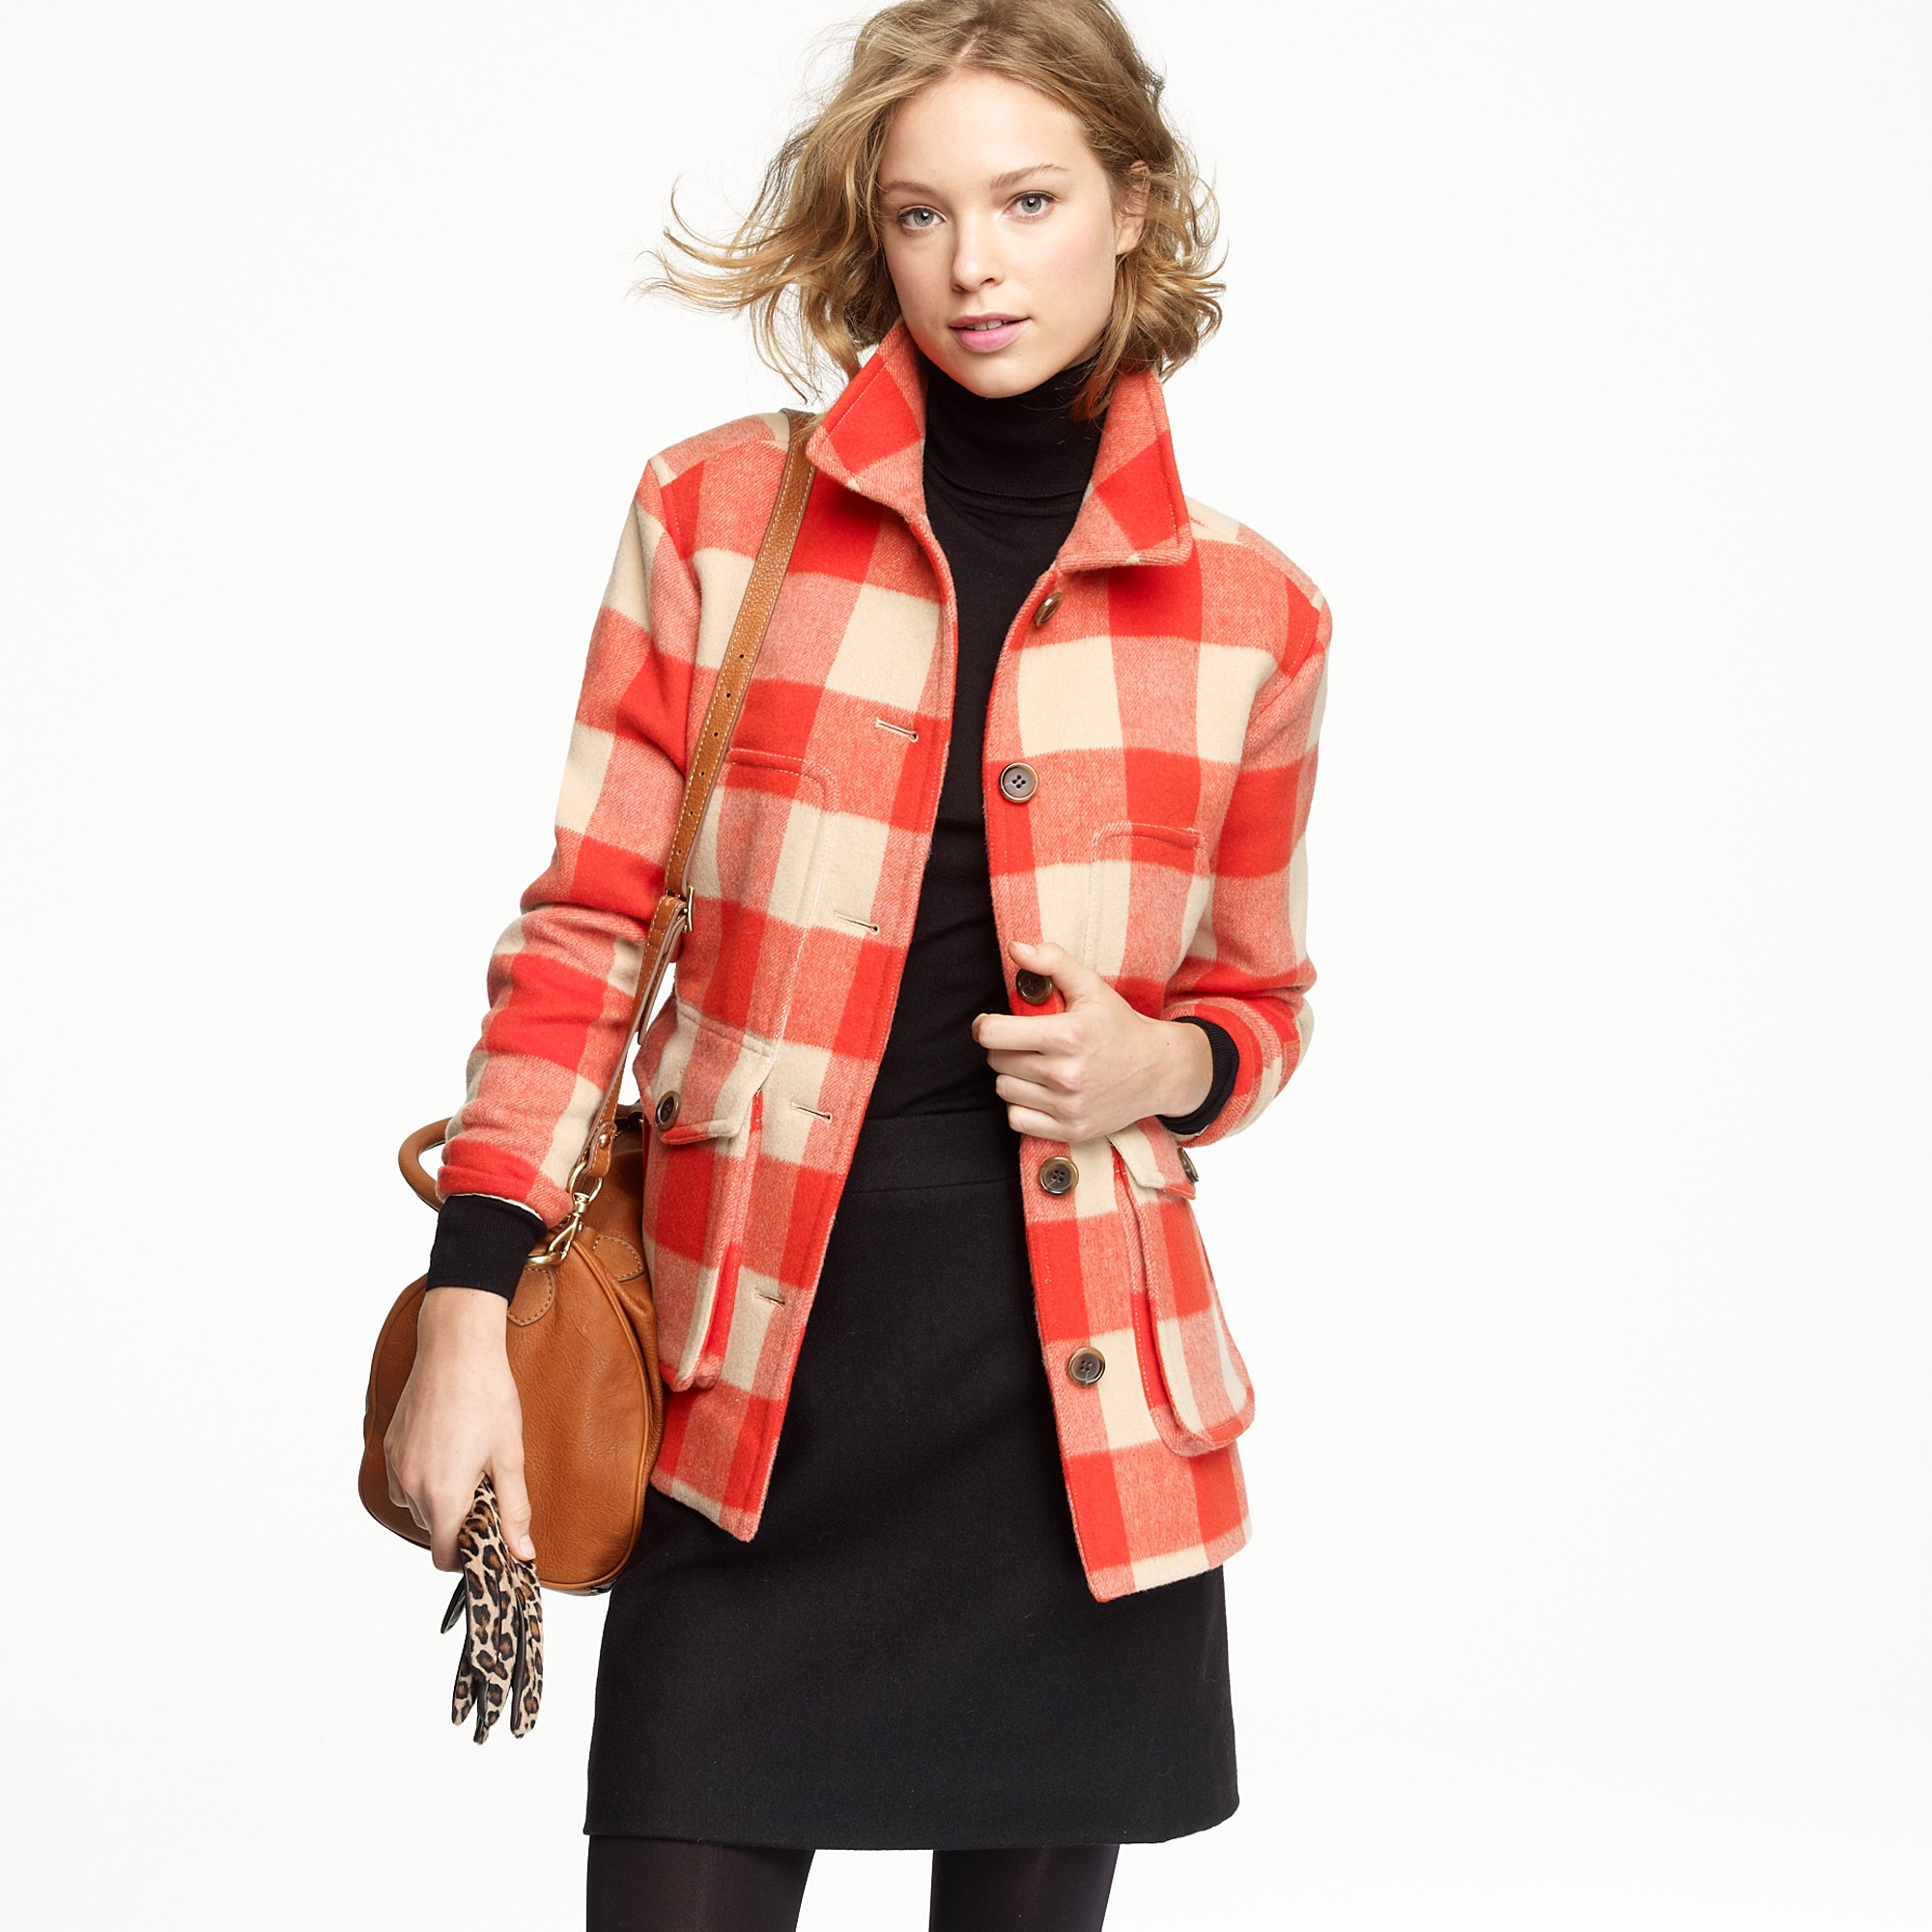 J.crew Stadium-cloth Car Coat in Buffalo Plaid in Red | Lyst